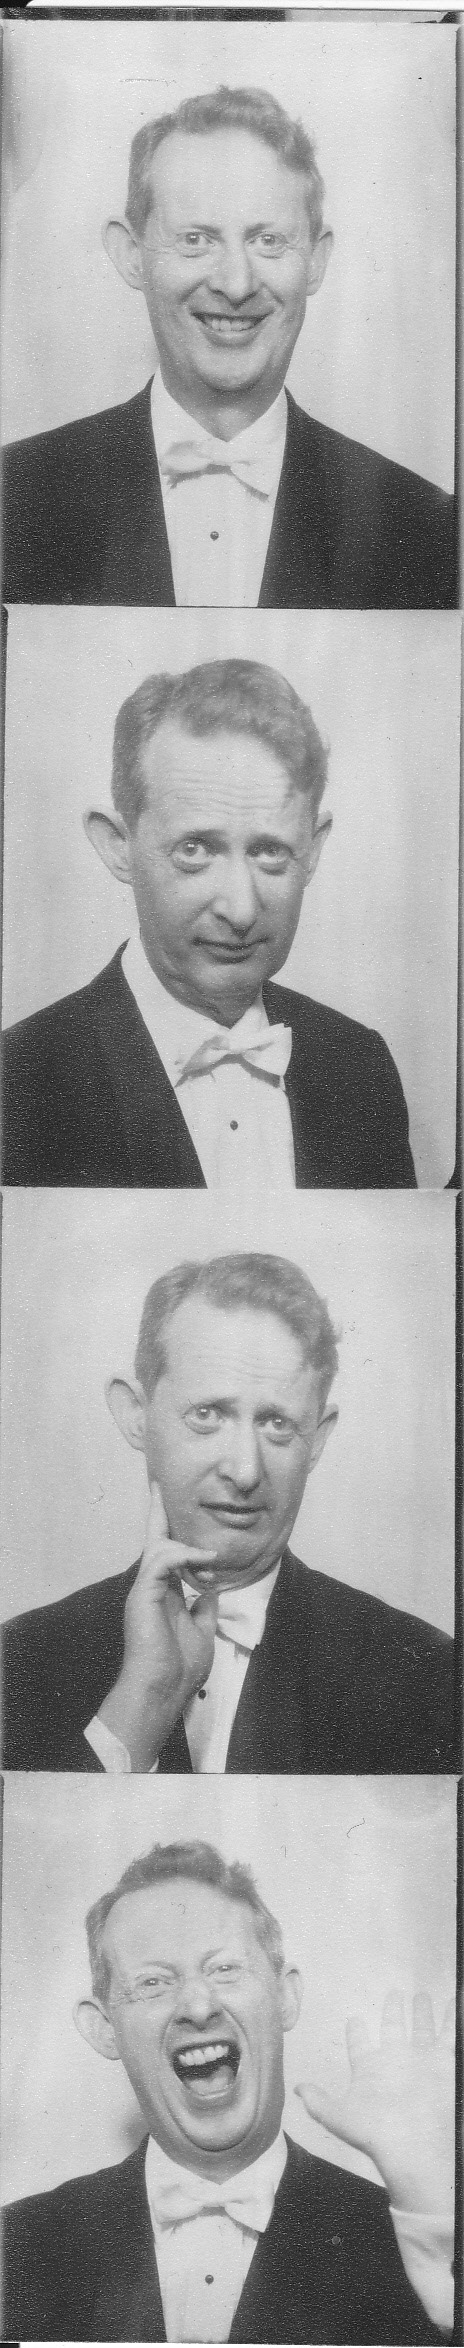 Greg Poppleton - Original Photo Booth Mug Shots Taken At A 1920s Themed Event